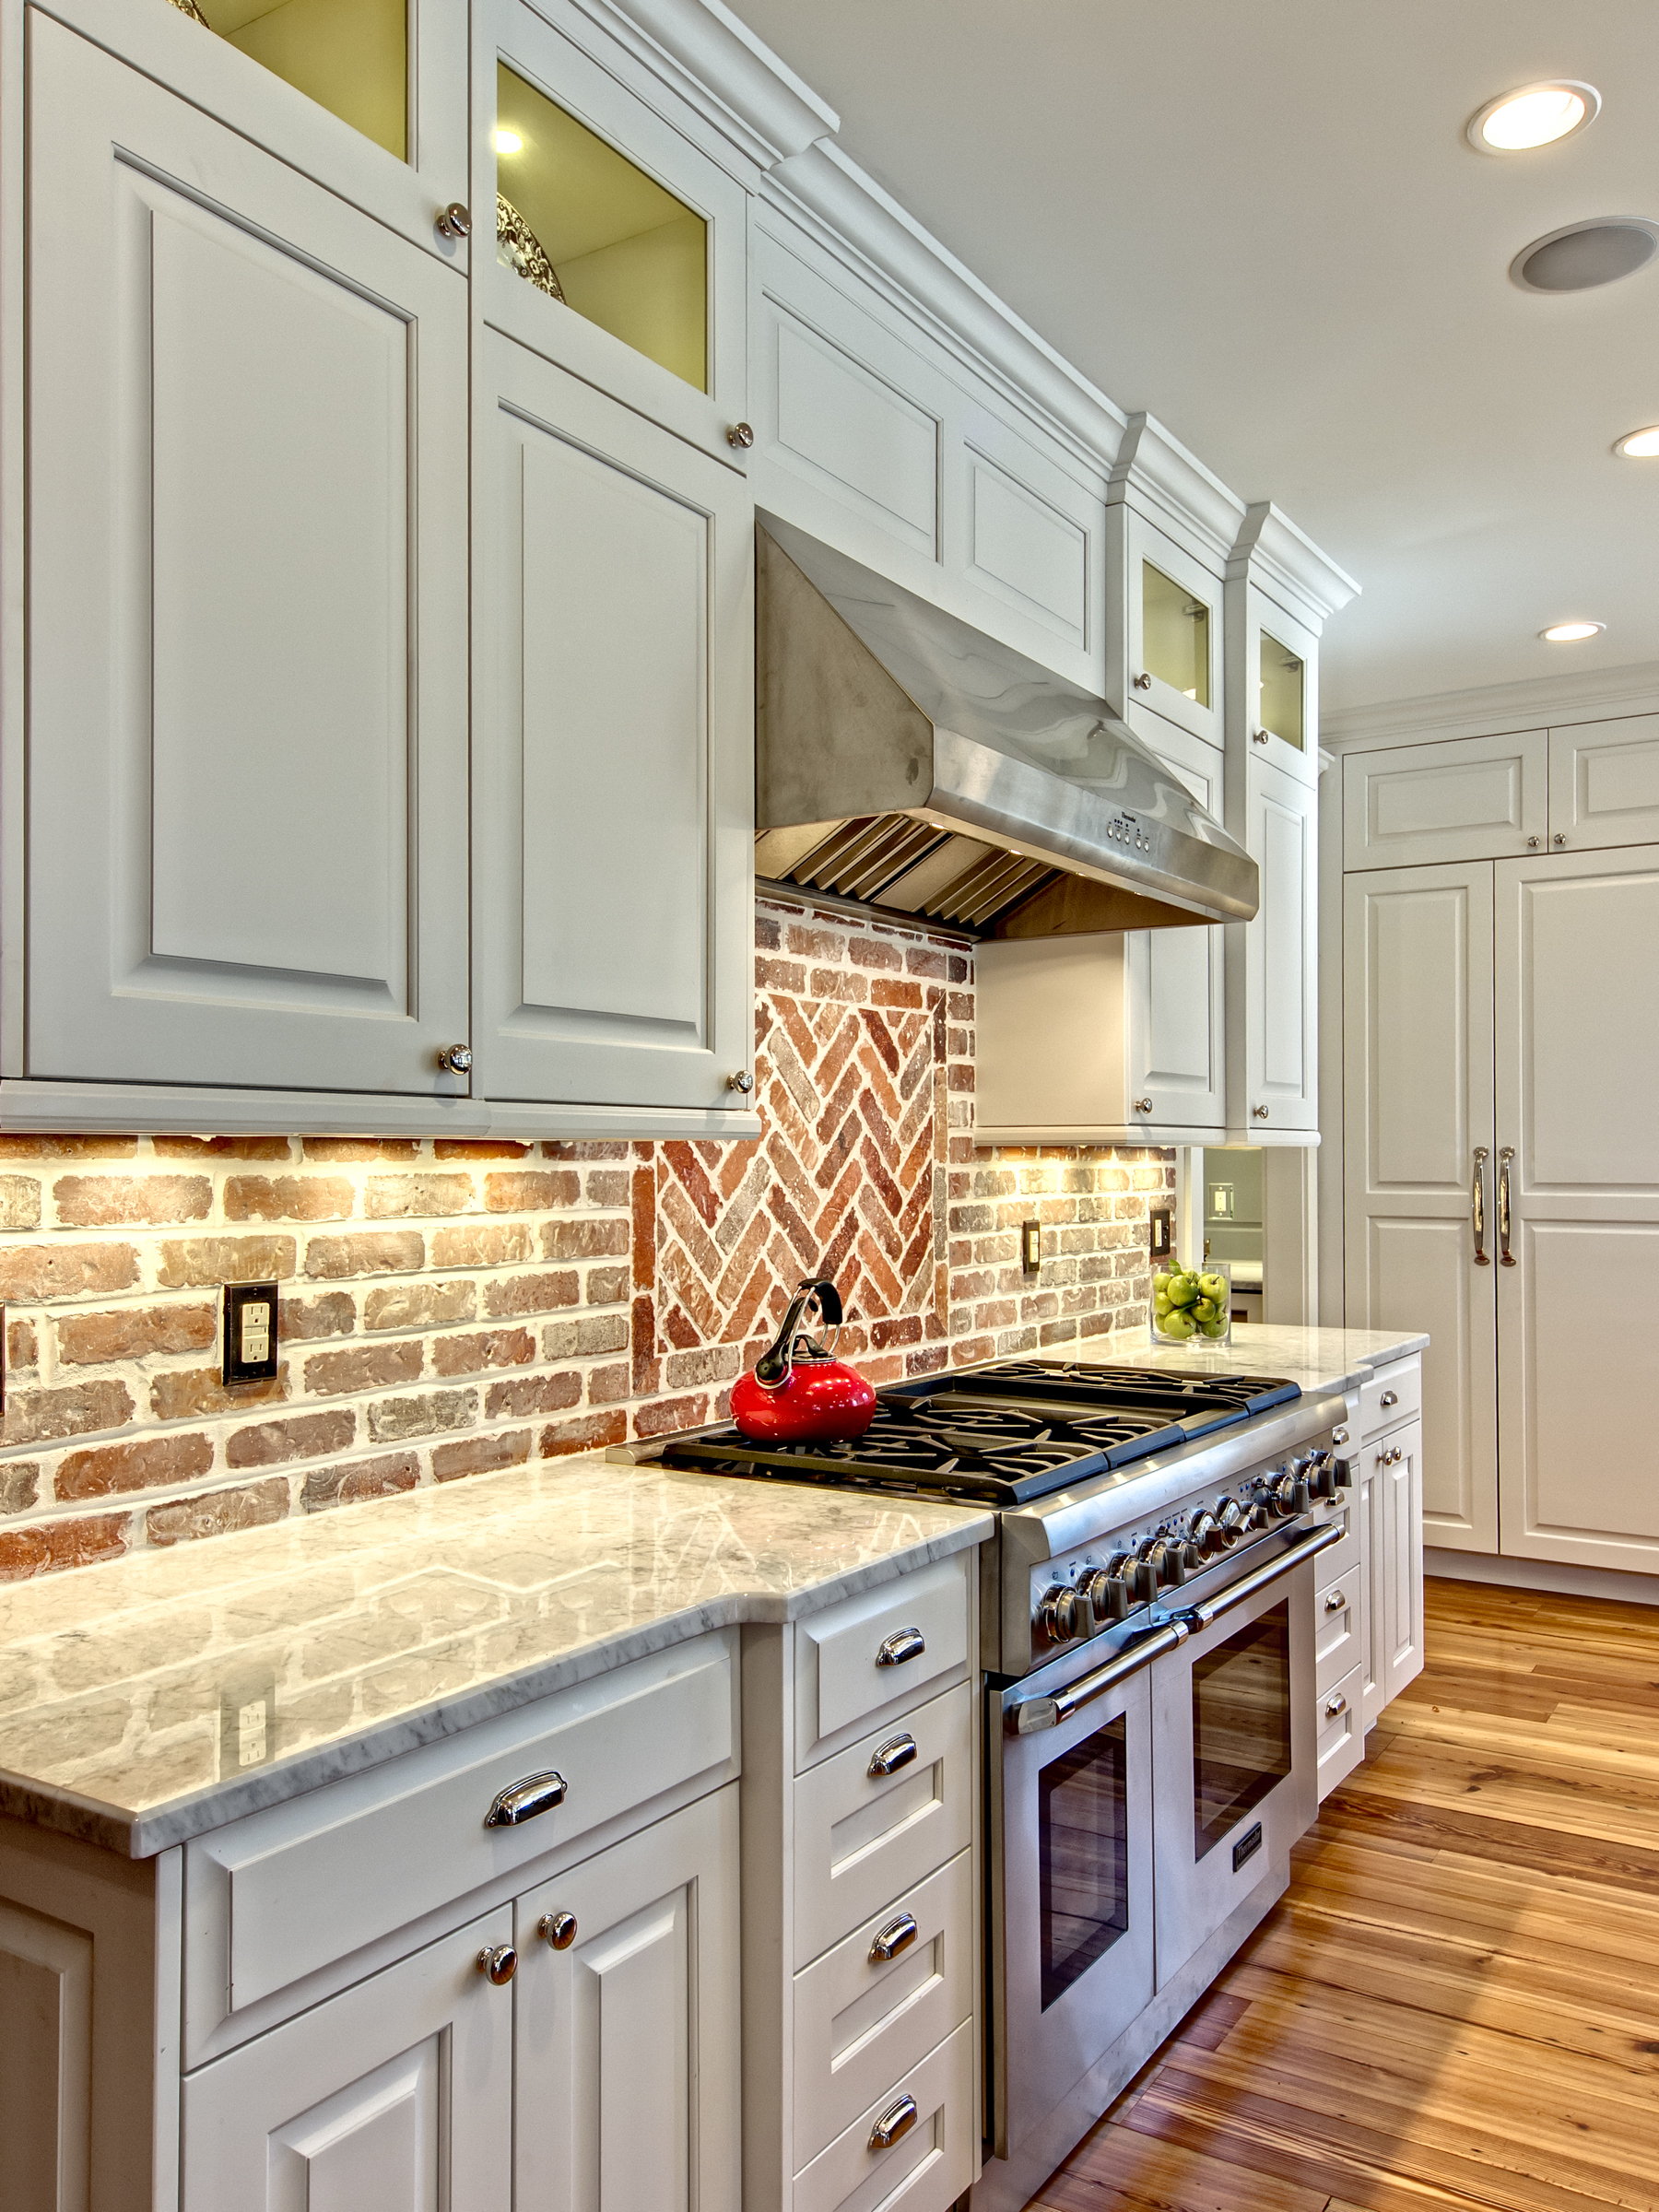 The herringbone pattern insert of bricks above the range breaks up the standard brick pattern in a way that is interesting.